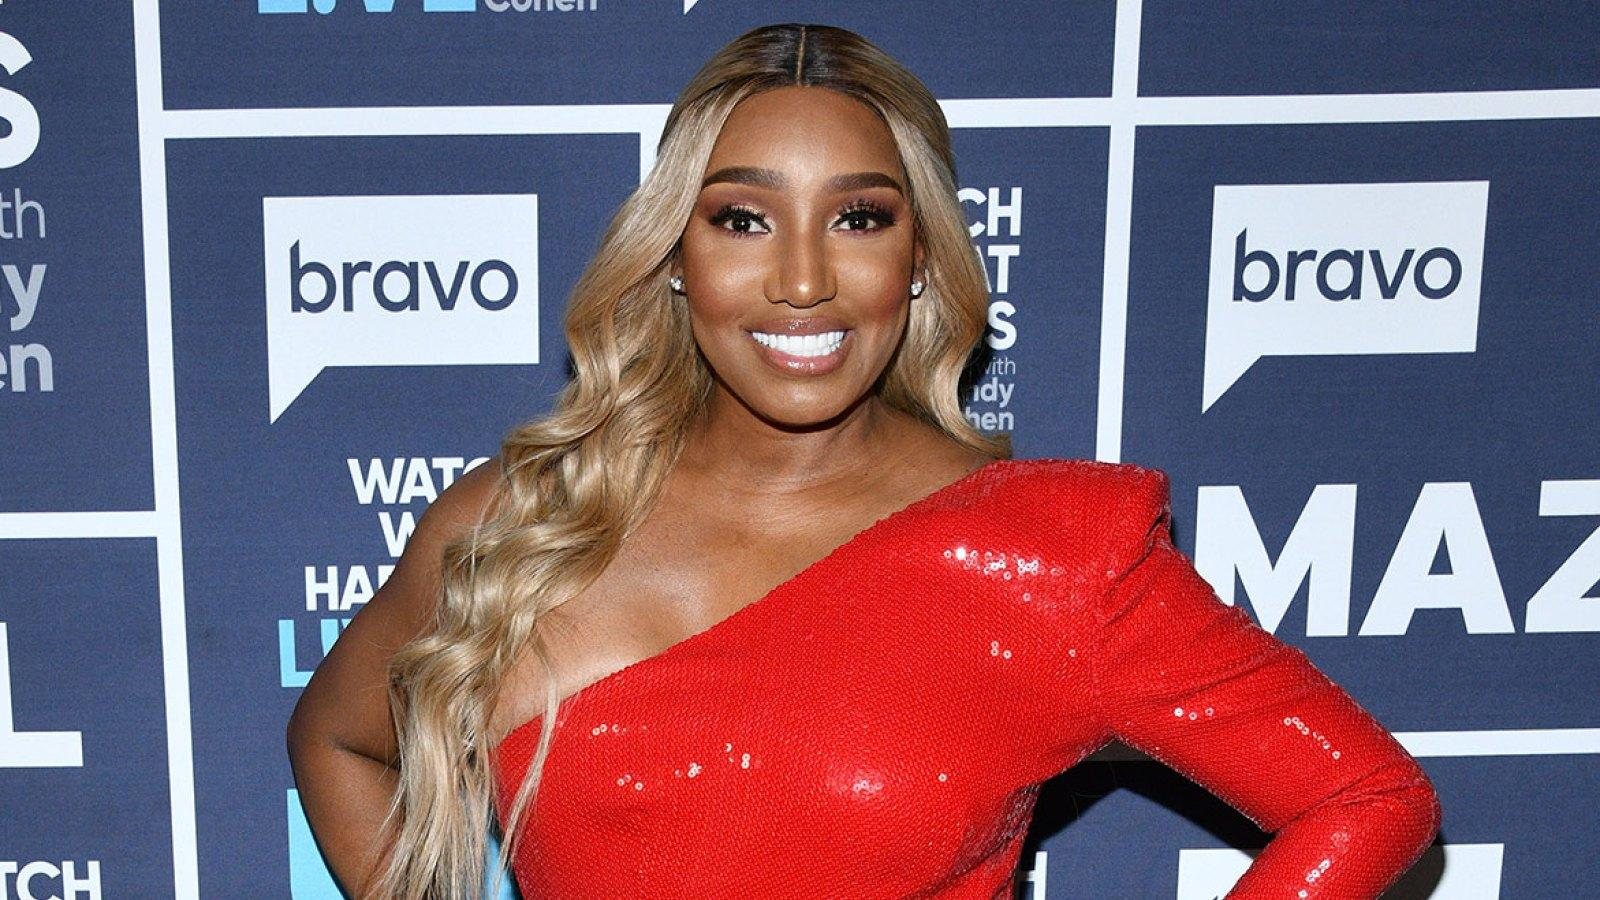 NeNe Leakes Makes Fans Emotional With This Video